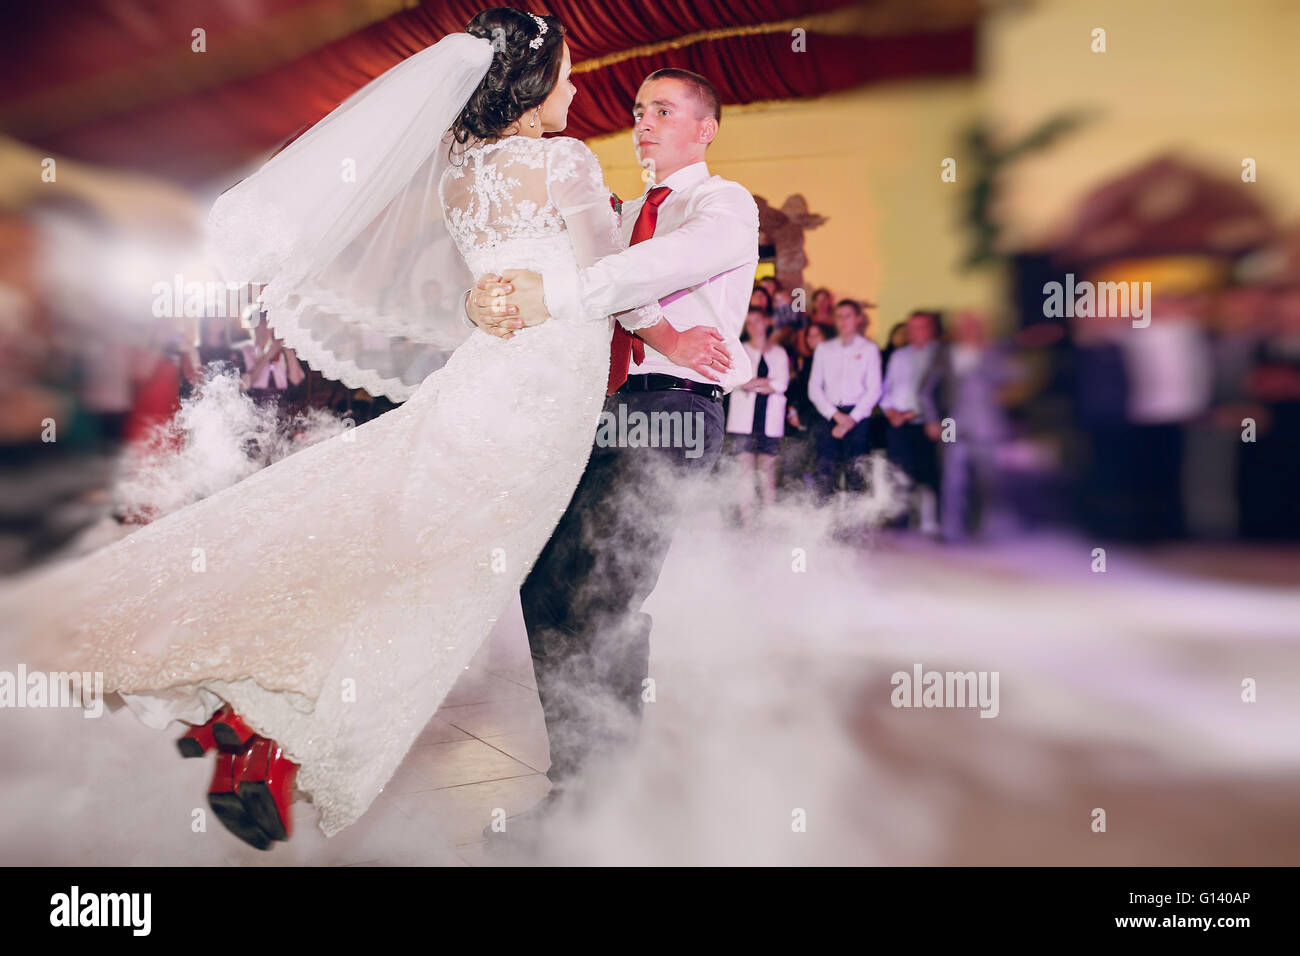 Wedding Day Hd Stock Photo 103964974 Alamy